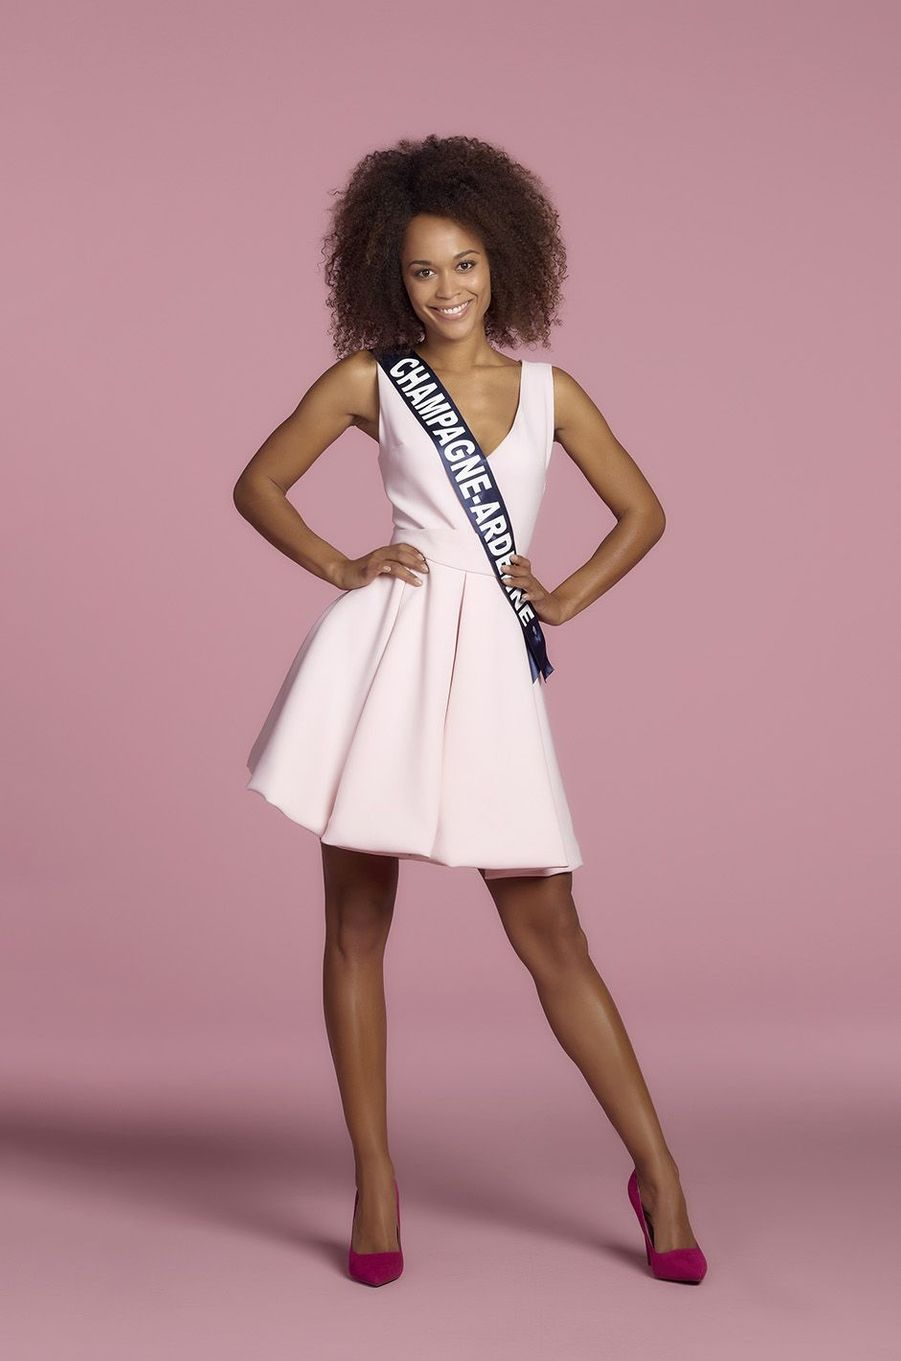 Safiatou Guinot, Miss Champagne-Ardennes.